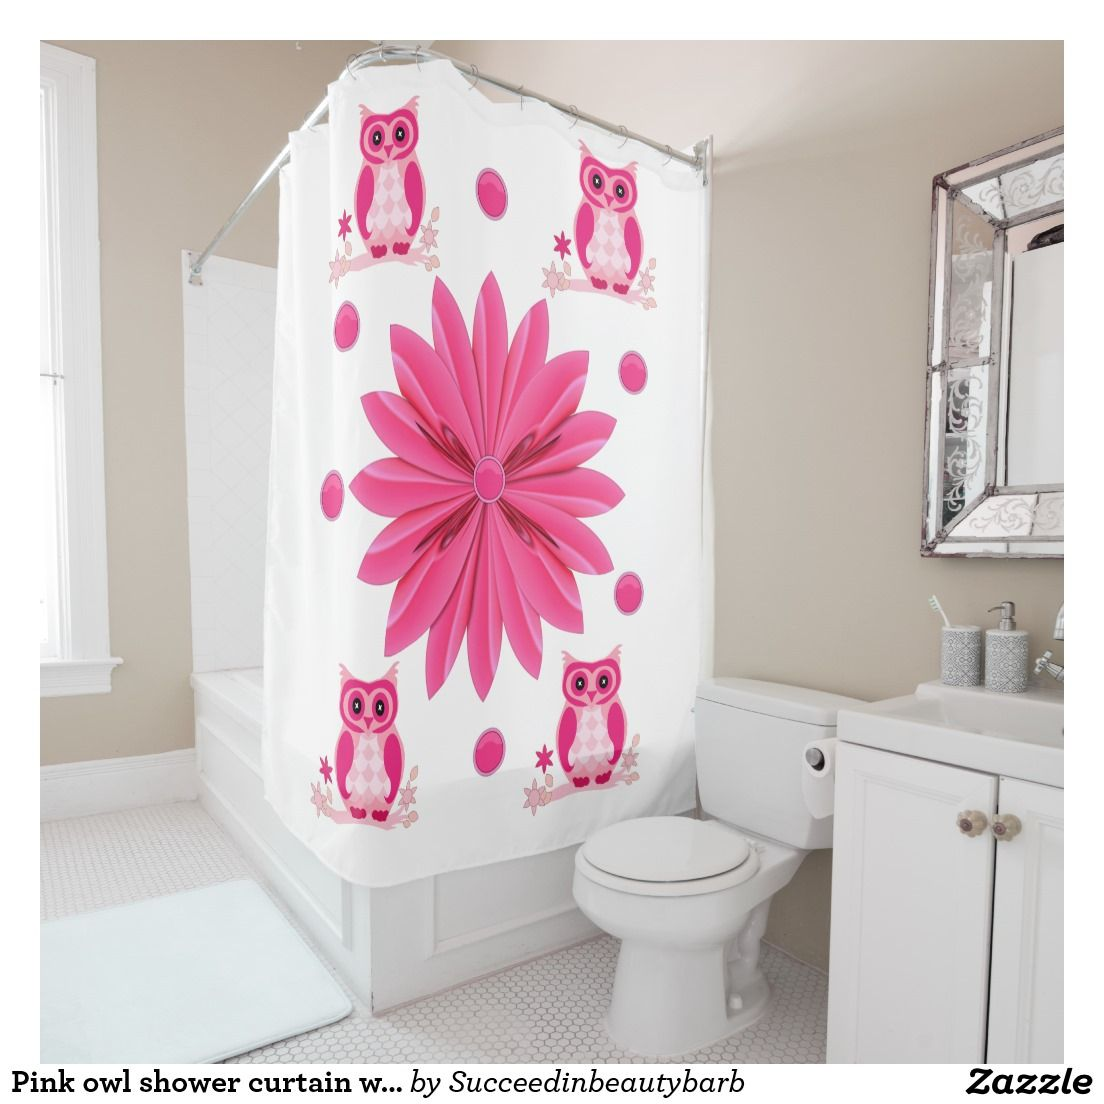 Owl shower curtains - Pink Owl Shower Curtain With White Background